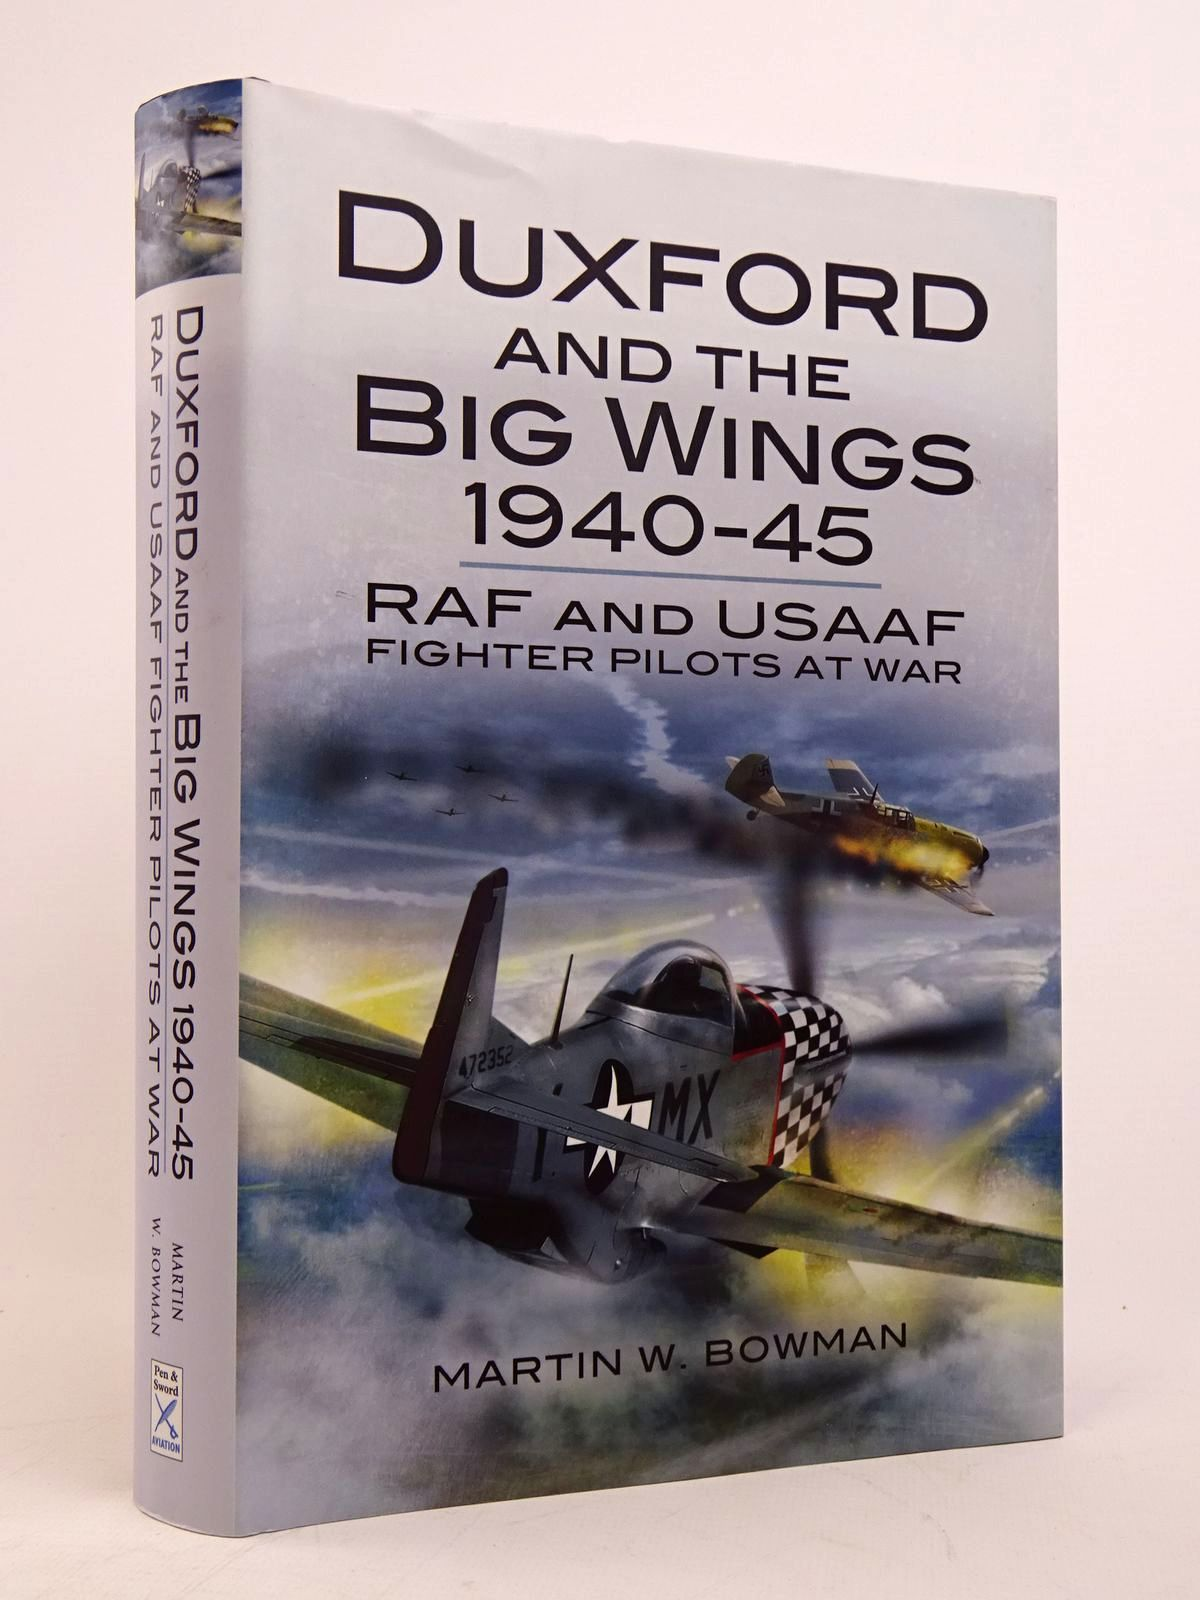 Photo of DUXFORD AND THE BIG WINGS 1940-45: RAF AND USAAF FIGHTER PILOTS AT WAR written by Bowman, Martin W. published by Pen & Sword Aviation (STOCK CODE: 1817660)  for sale by Stella & Rose's Books